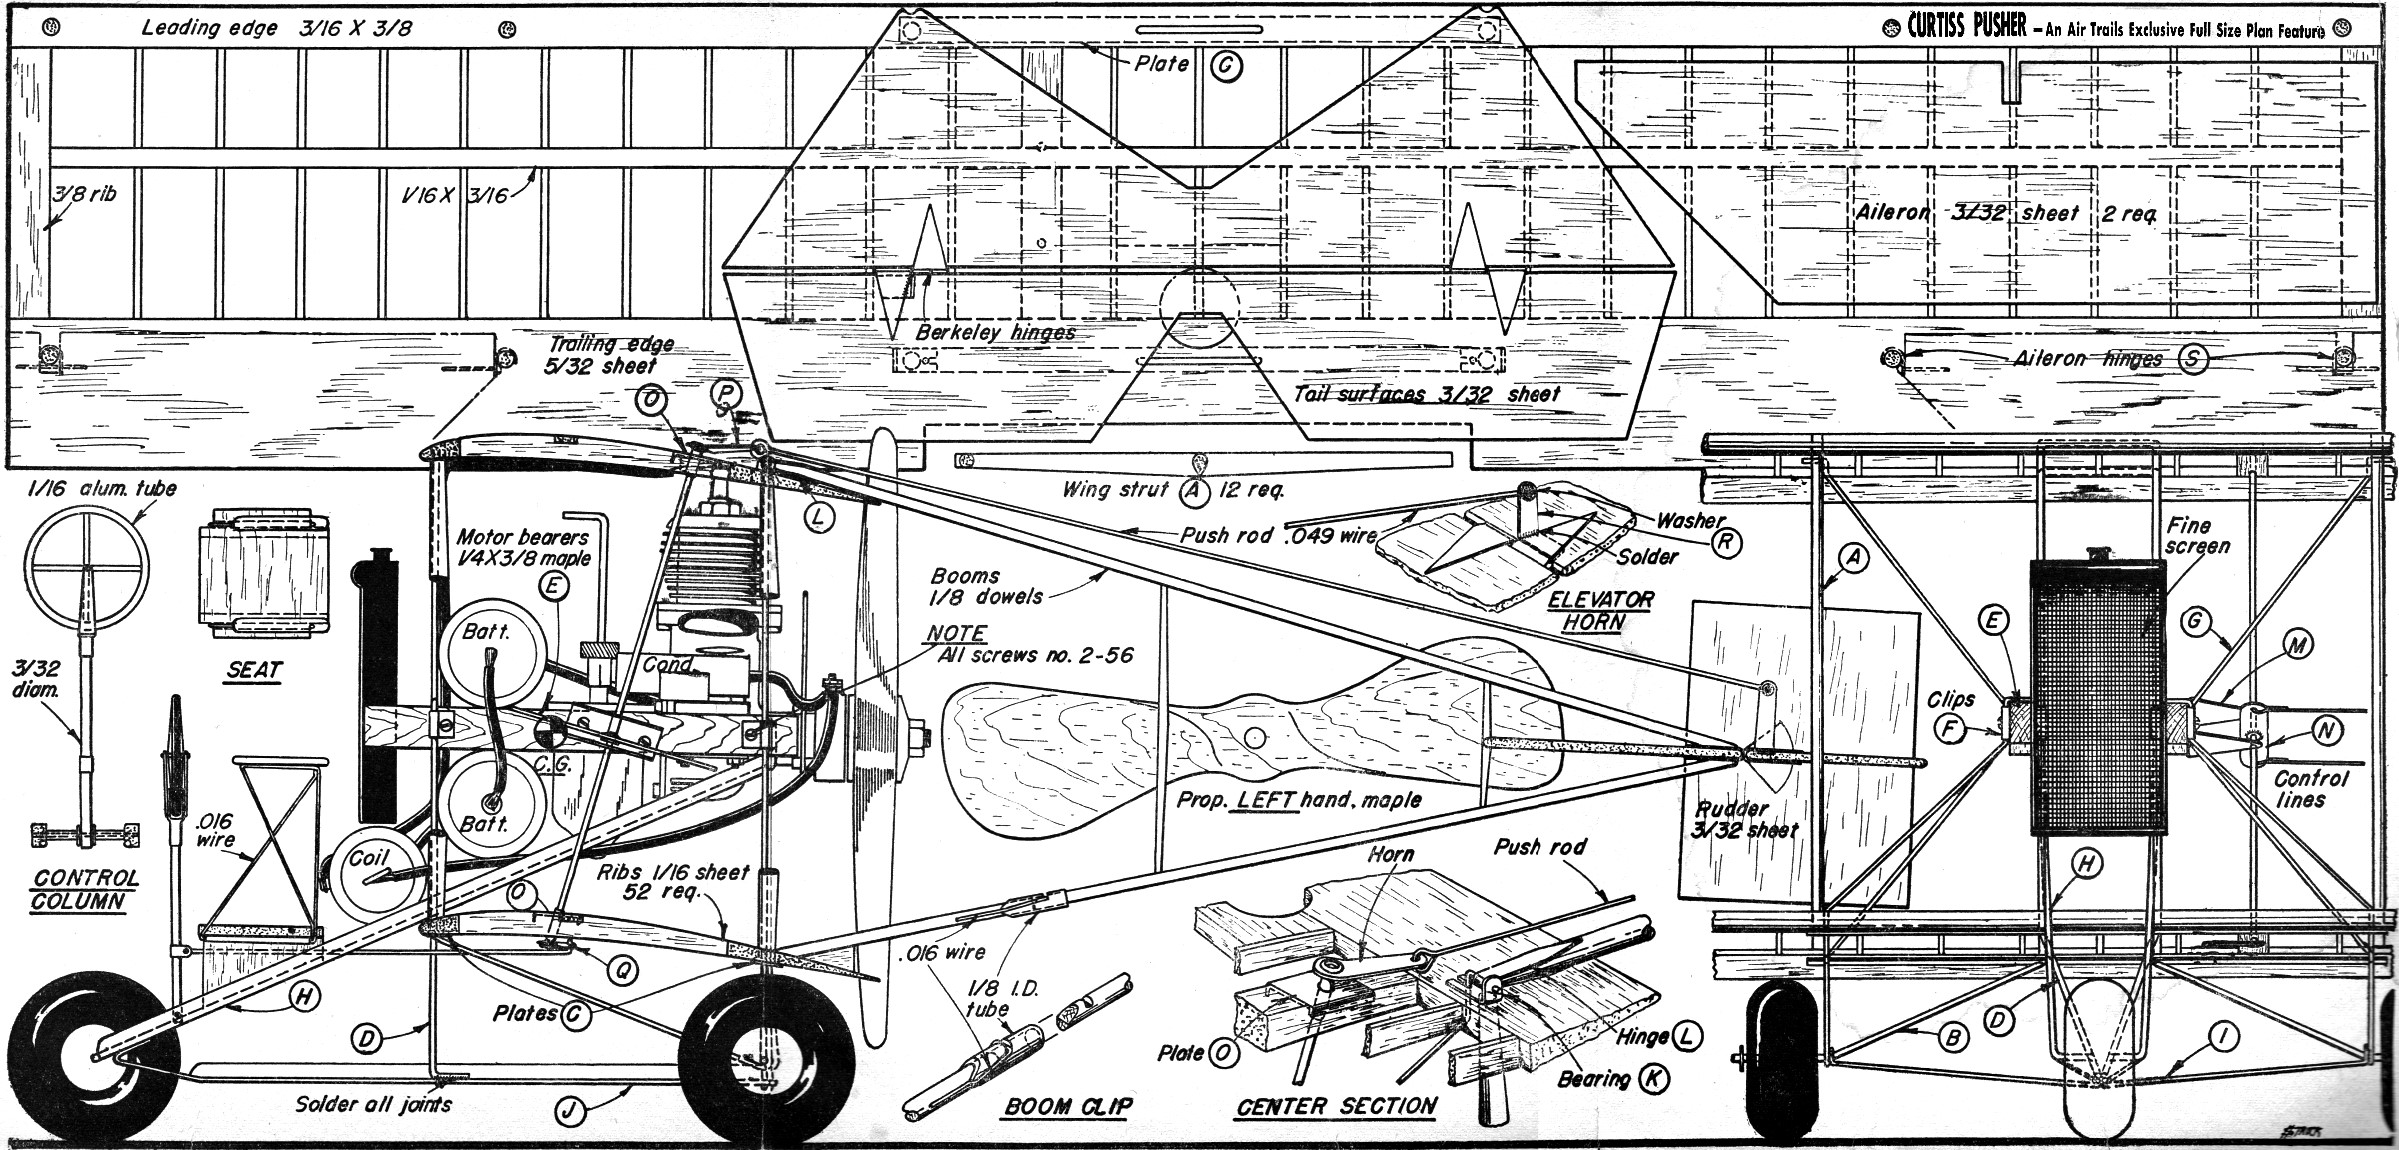 Plans For Curtiss Pusher - RCU Forums